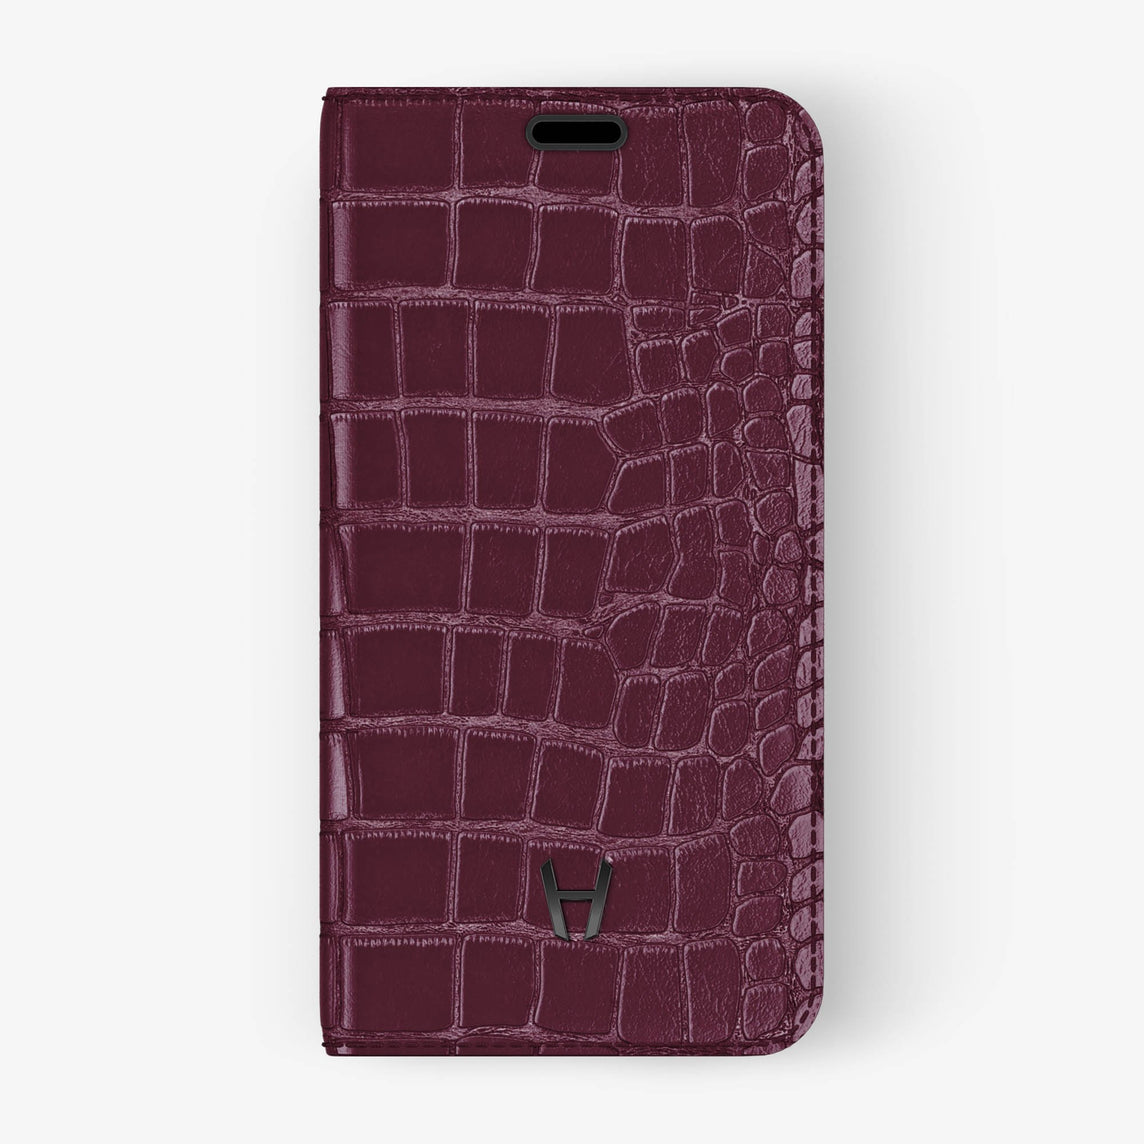 Alligator [iPhone Folio Case] [model:iphone-xr-case] [colour:burgundy] [finishing:black]